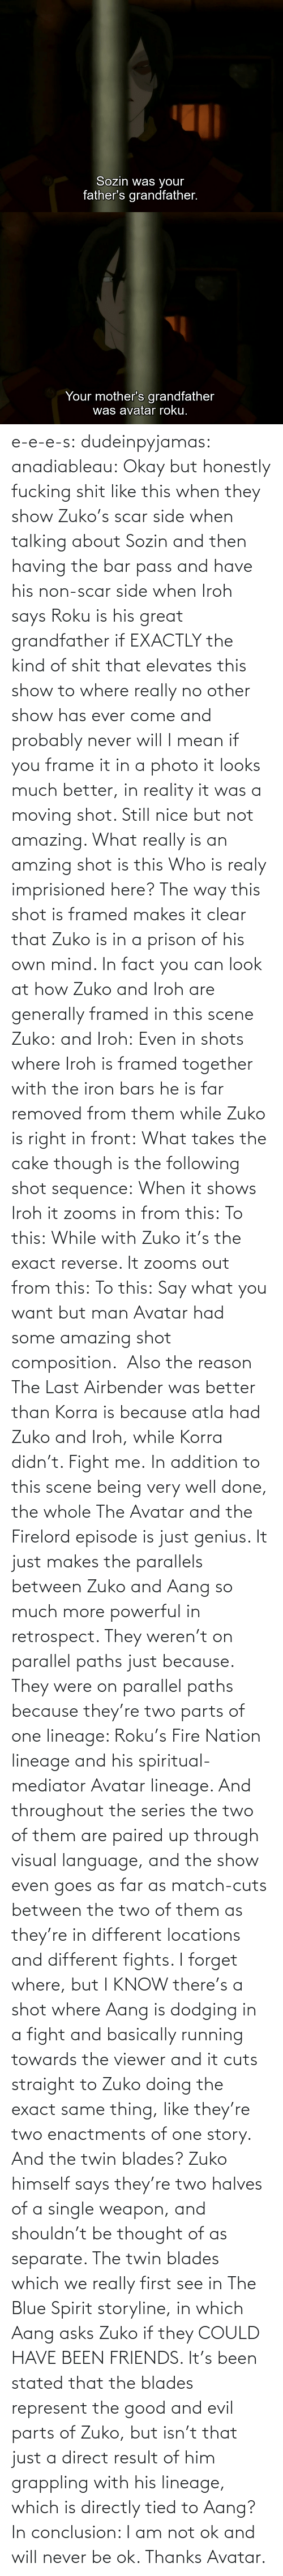 The Last: e-e-e-s: dudeinpyjamas:   anadiableau: Okay but honestly fucking shit like this when they show Zuko's scar side when talking about Sozin and then having the bar pass and have his non-scar side when Iroh says Roku is his great grandfather if EXACTLY the kind of shit that elevates this show to where really no other show has ever come and probably never will I mean if you frame it in a photo it looks much better, in reality it was a moving shot. Still nice but not amazing. What really is an amzing shot is this Who is realy imprisioned here? The way this shot is framed makes it clear that Zuko is in a prison of his own mind. In fact you can look at how Zuko and Iroh are generally framed in this scene Zuko: and Iroh: Even in shots where Iroh is framed together with the iron bars he is far removed from them while Zuko is right in front:  What takes the cake though is the following shot sequence: When it shows Iroh it zooms in from this: To this: While with Zuko it's the exact reverse. It zooms out from this: To this: Say what you want but man Avatar had some amazing shot composition.   Also the reason The Last Airbender was better than Korra is because atla had Zuko and Iroh, while Korra didn't. Fight me.    In addition to this scene being very well done, the whole The Avatar and the Firelord episode is just genius.  It just makes the parallels between Zuko and Aang so much more powerful in retrospect.  They weren't on parallel paths just because.  They were on parallel paths because they're two parts of one lineage: Roku's Fire Nation lineage and his spiritual-mediator Avatar lineage.  And throughout the series the two of them are paired up through visual language, and the show even goes as far as match-cuts between the two of them as they're in different locations and different fights.  I forget where, but I KNOW there's a shot where Aang is dodging in a fight and basically running towards the viewer and it cuts straight to Zuko doing the exact same thing, like they're two enactments of one story.   And the twin blades?  Zuko himself says they're two halves of a single weapon, and shouldn't be thought of as separate.  The twin blades which we really first see in The Blue Spirit storyline, in which Aang asks Zuko if they COULD HAVE BEEN FRIENDS.  It's been stated that the blades represent the good and evil parts of Zuko, but isn't that just a direct result of him grappling with his lineage, which is directly tied to Aang? In conclusion: I am not ok and will never be ok.  Thanks Avatar.